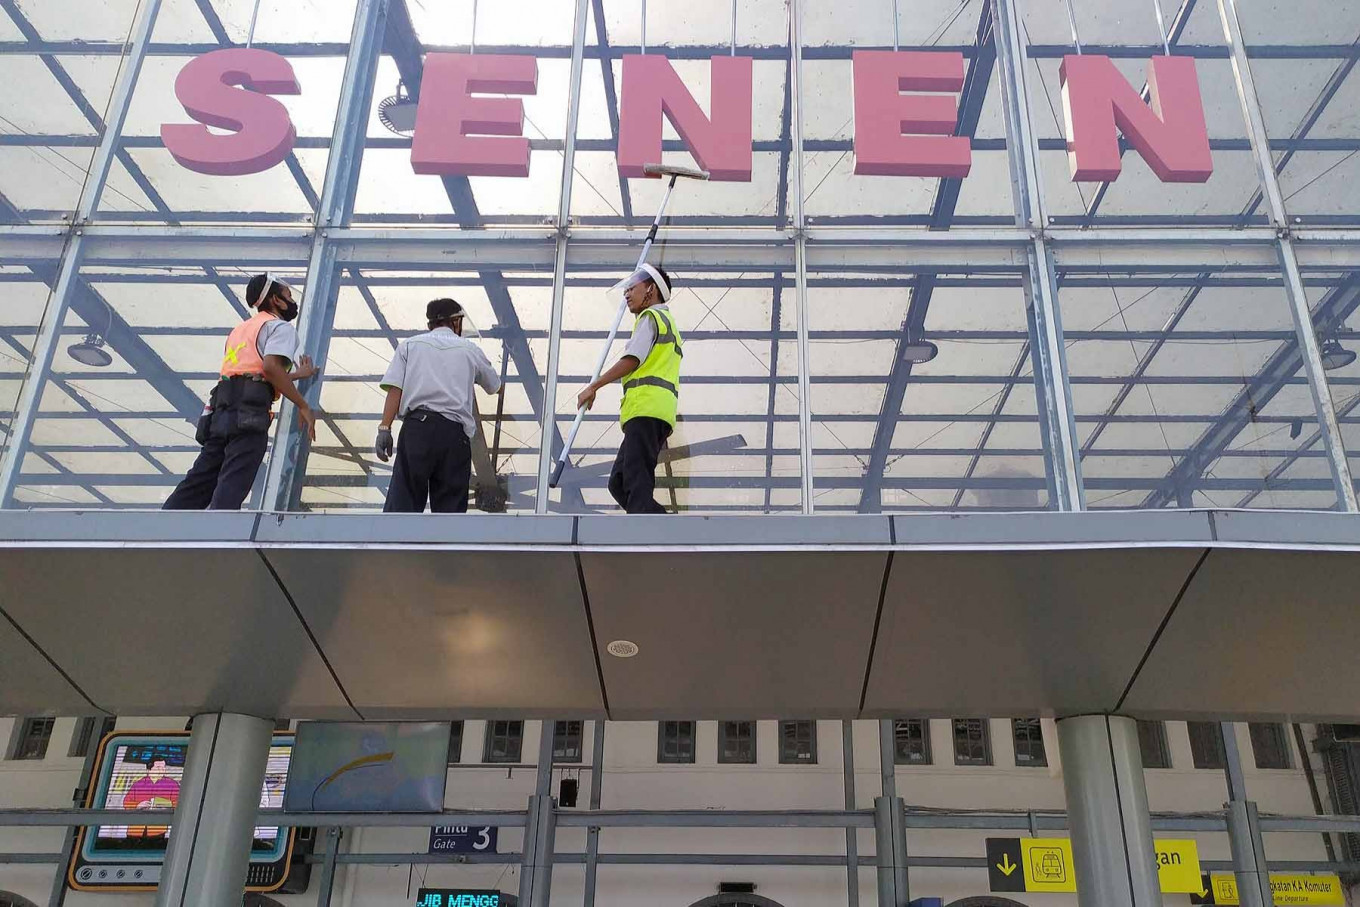 Workers clean the windows of Senen Station in Central Jakarta on June 29. State-owned train operator PT Kereta Api Indonesia (KAI) has resumed operations of several long-distance train services under strict health protocols. JP/P.J.Leo